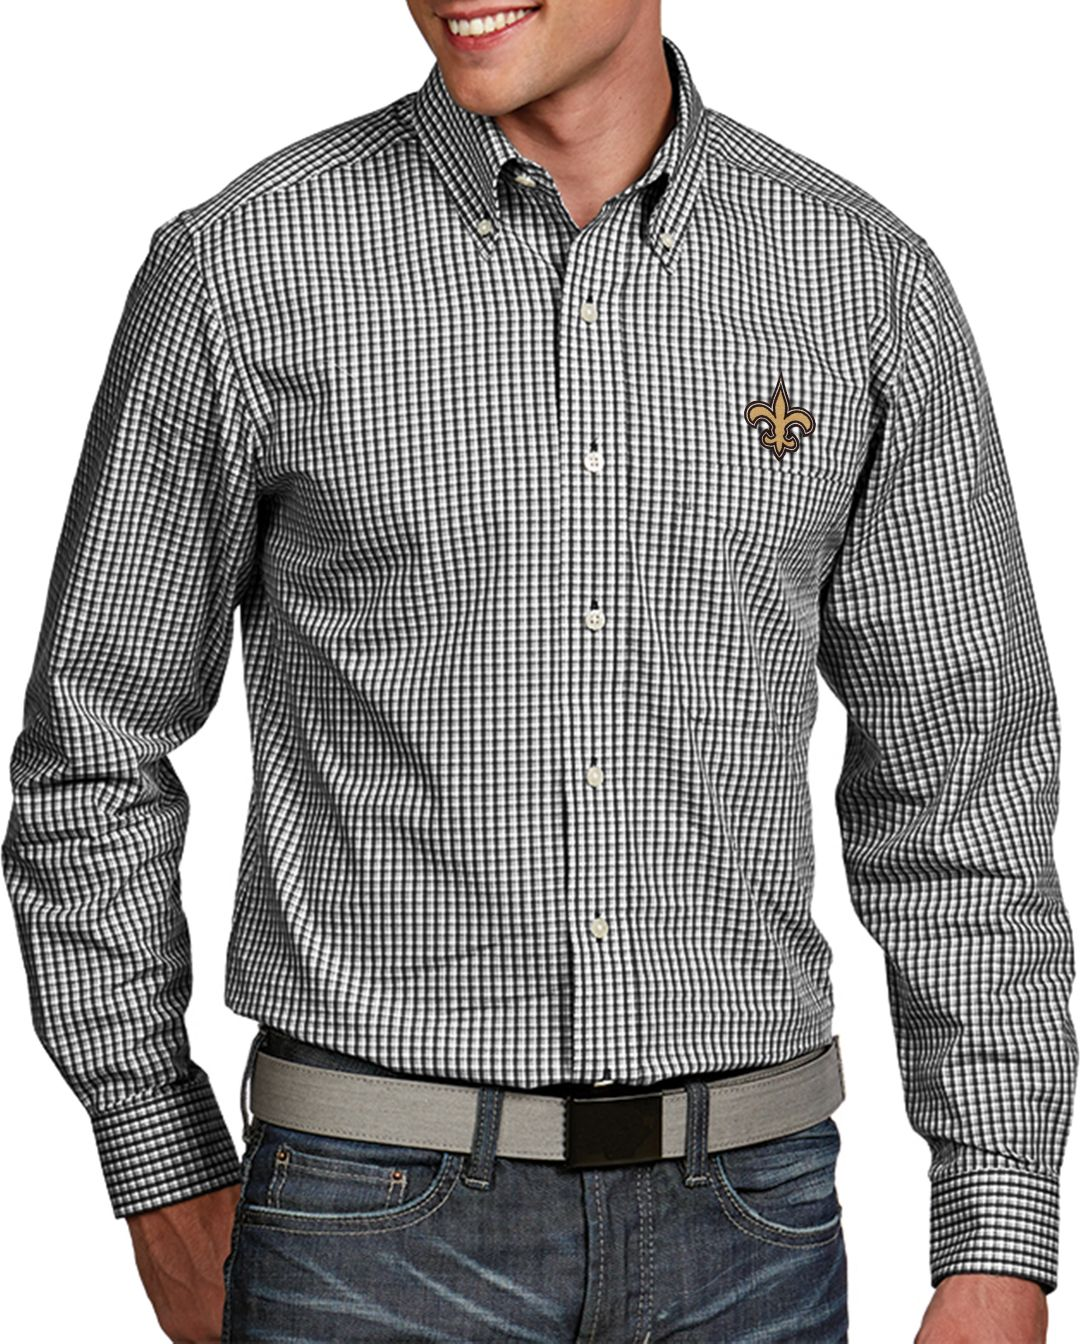 buy online 6accc 95835 Antigua Men's New Orleans Saints Associate Button Down Dress Shirt